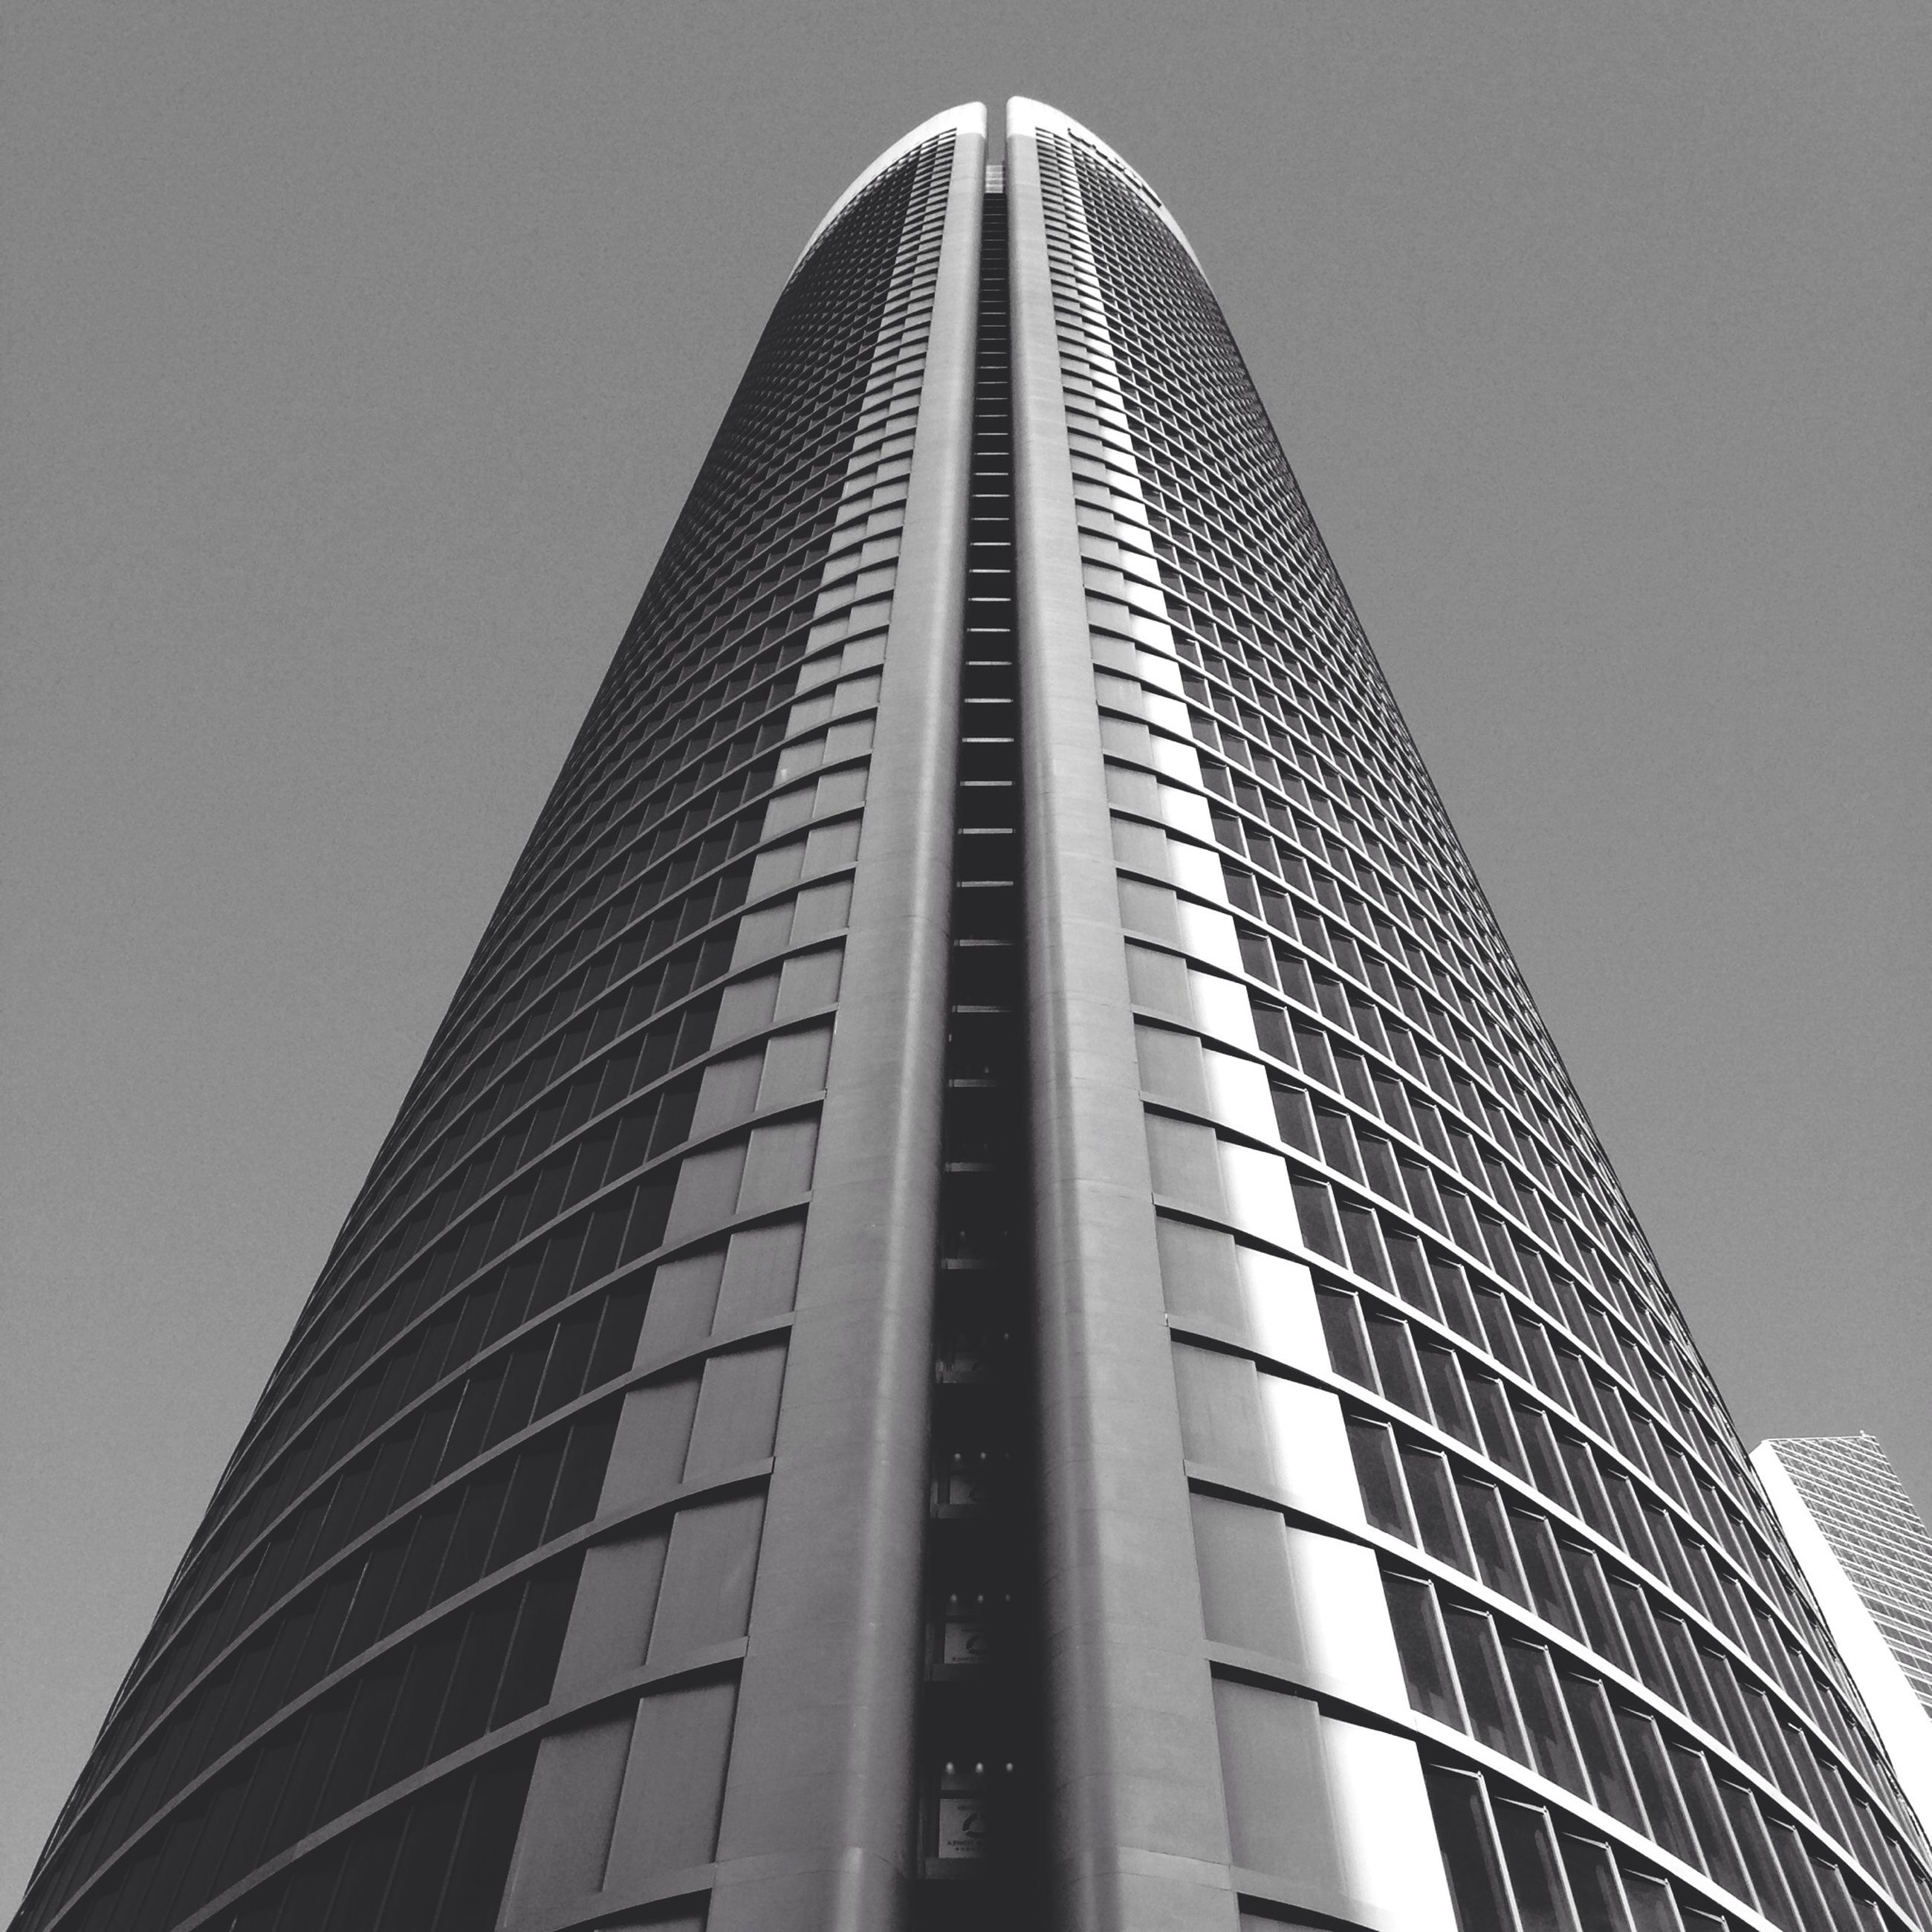 low angle view, architecture, built structure, building exterior, modern, tall - high, skyscraper, office building, tower, city, tall, clear sky, building, glass - material, sky, day, outdoors, no people, diminishing perspective, reflection